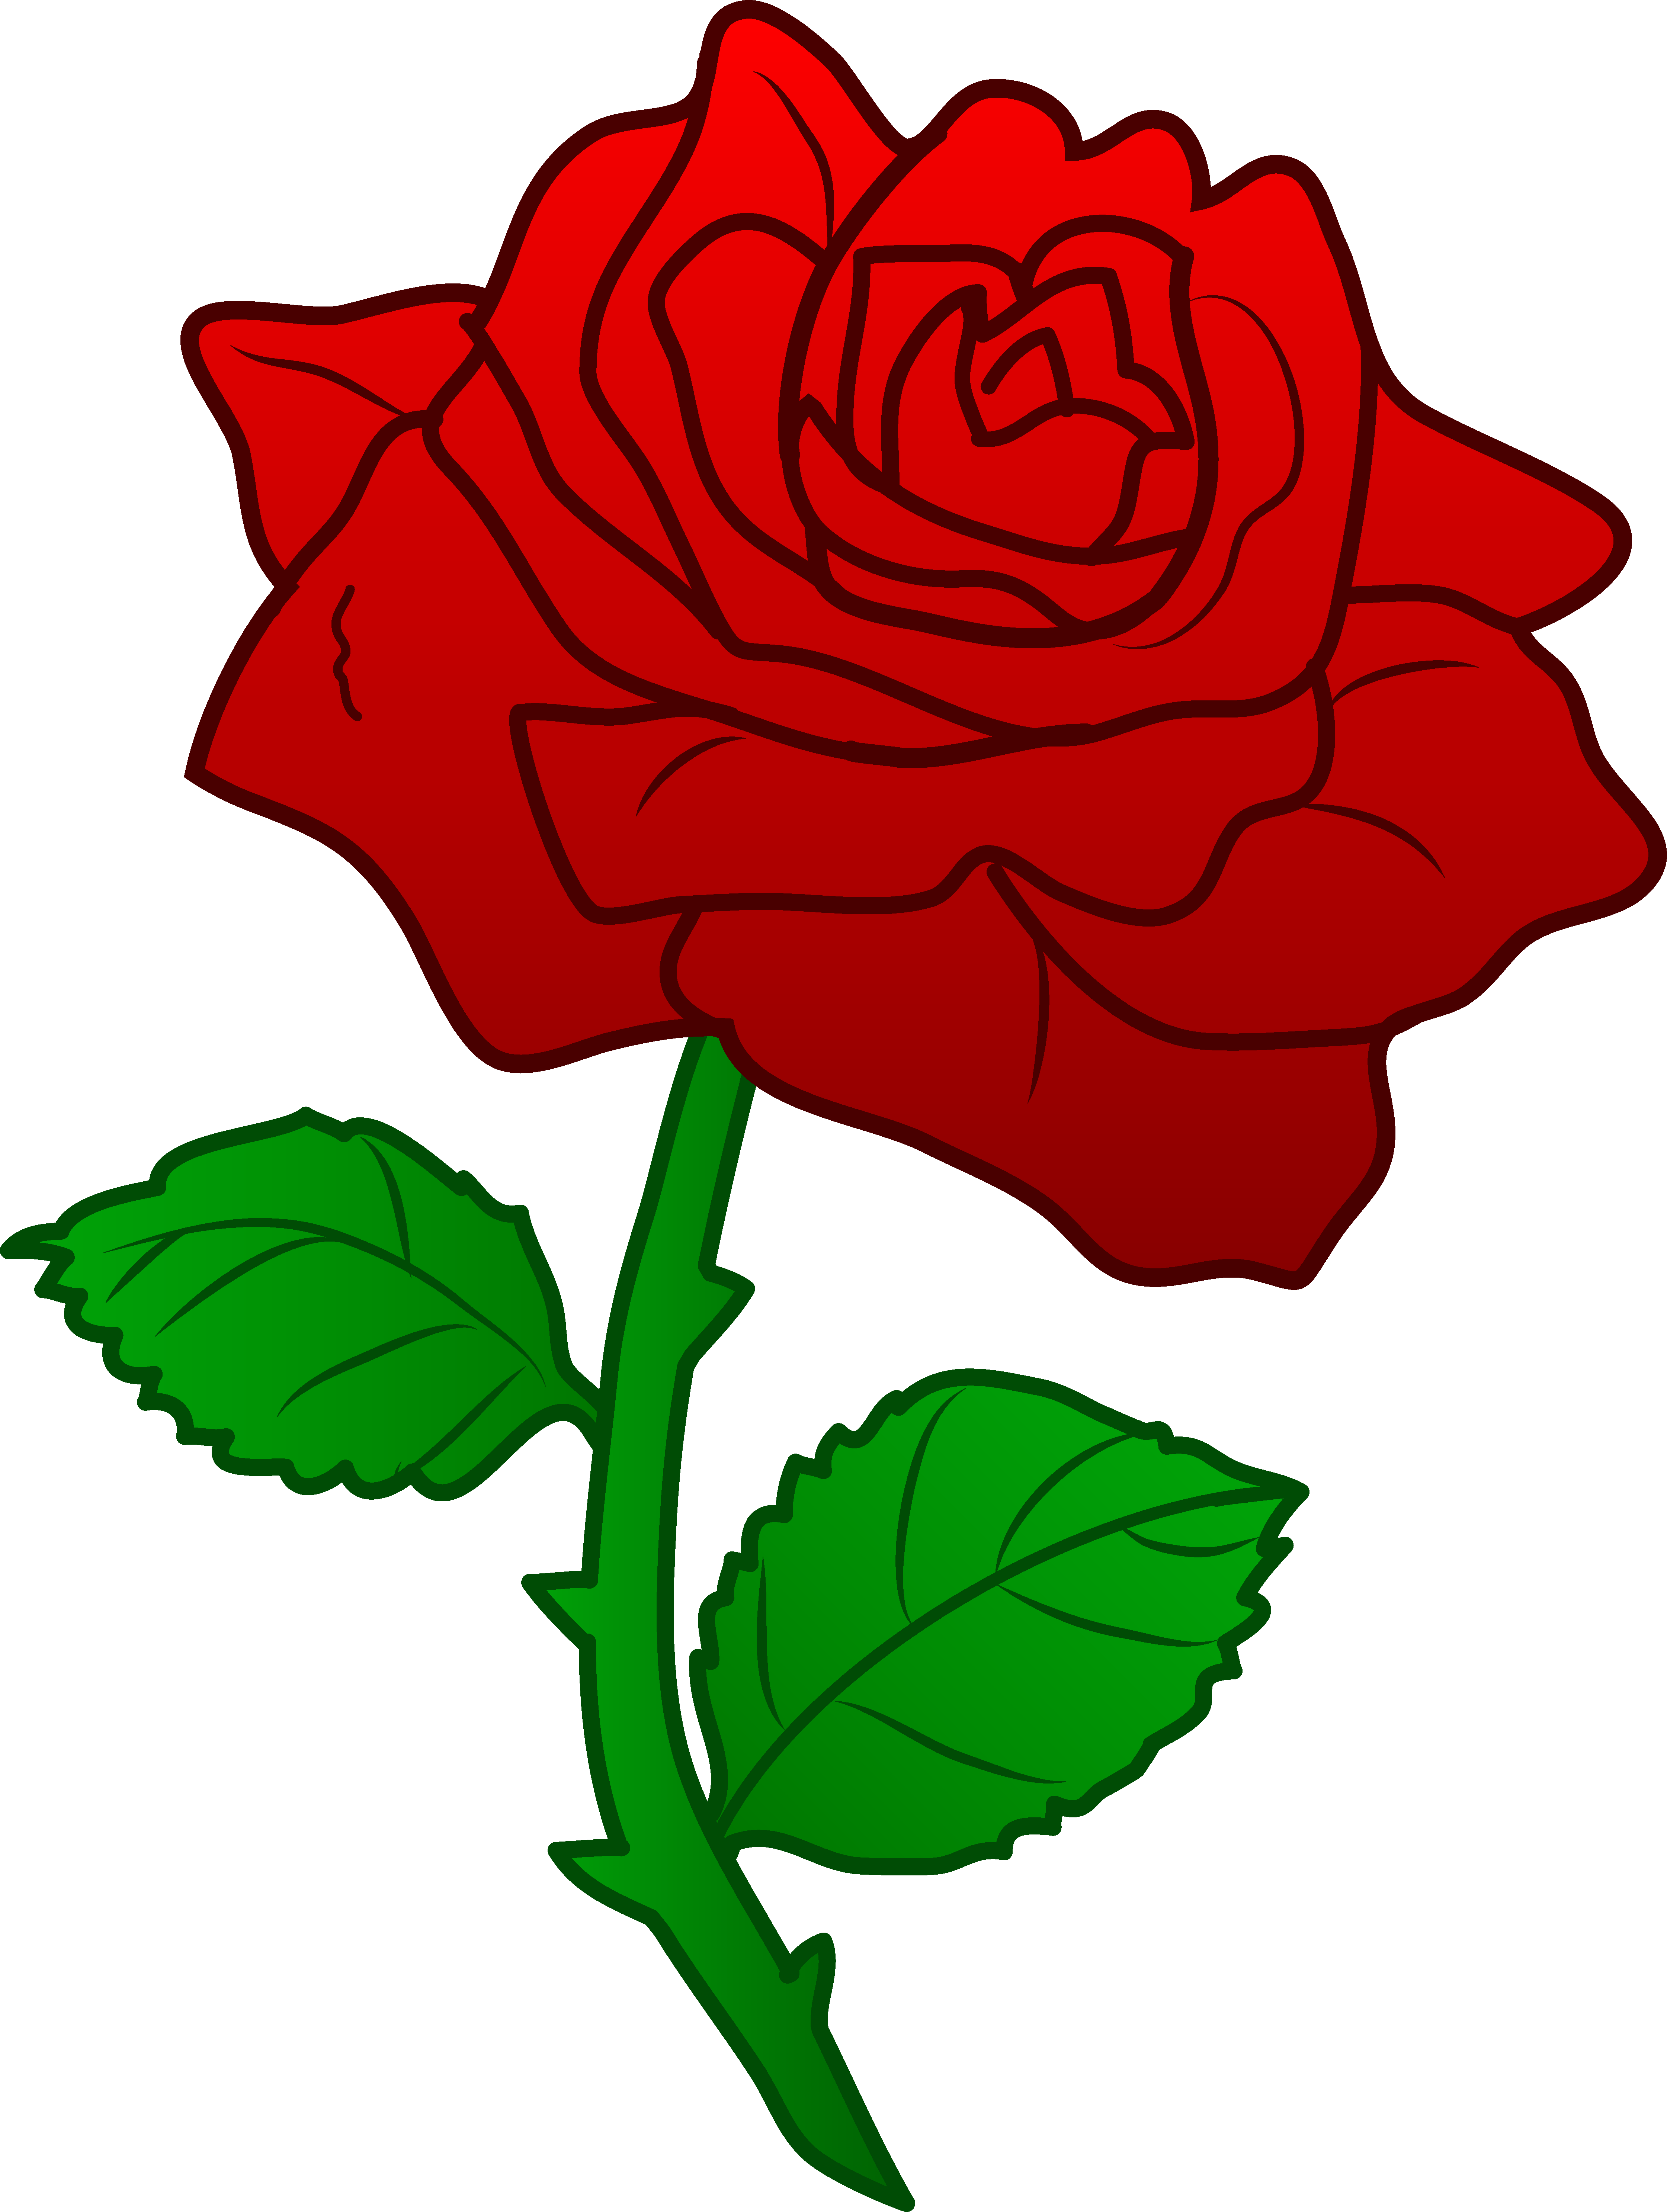 flowers clipart rose